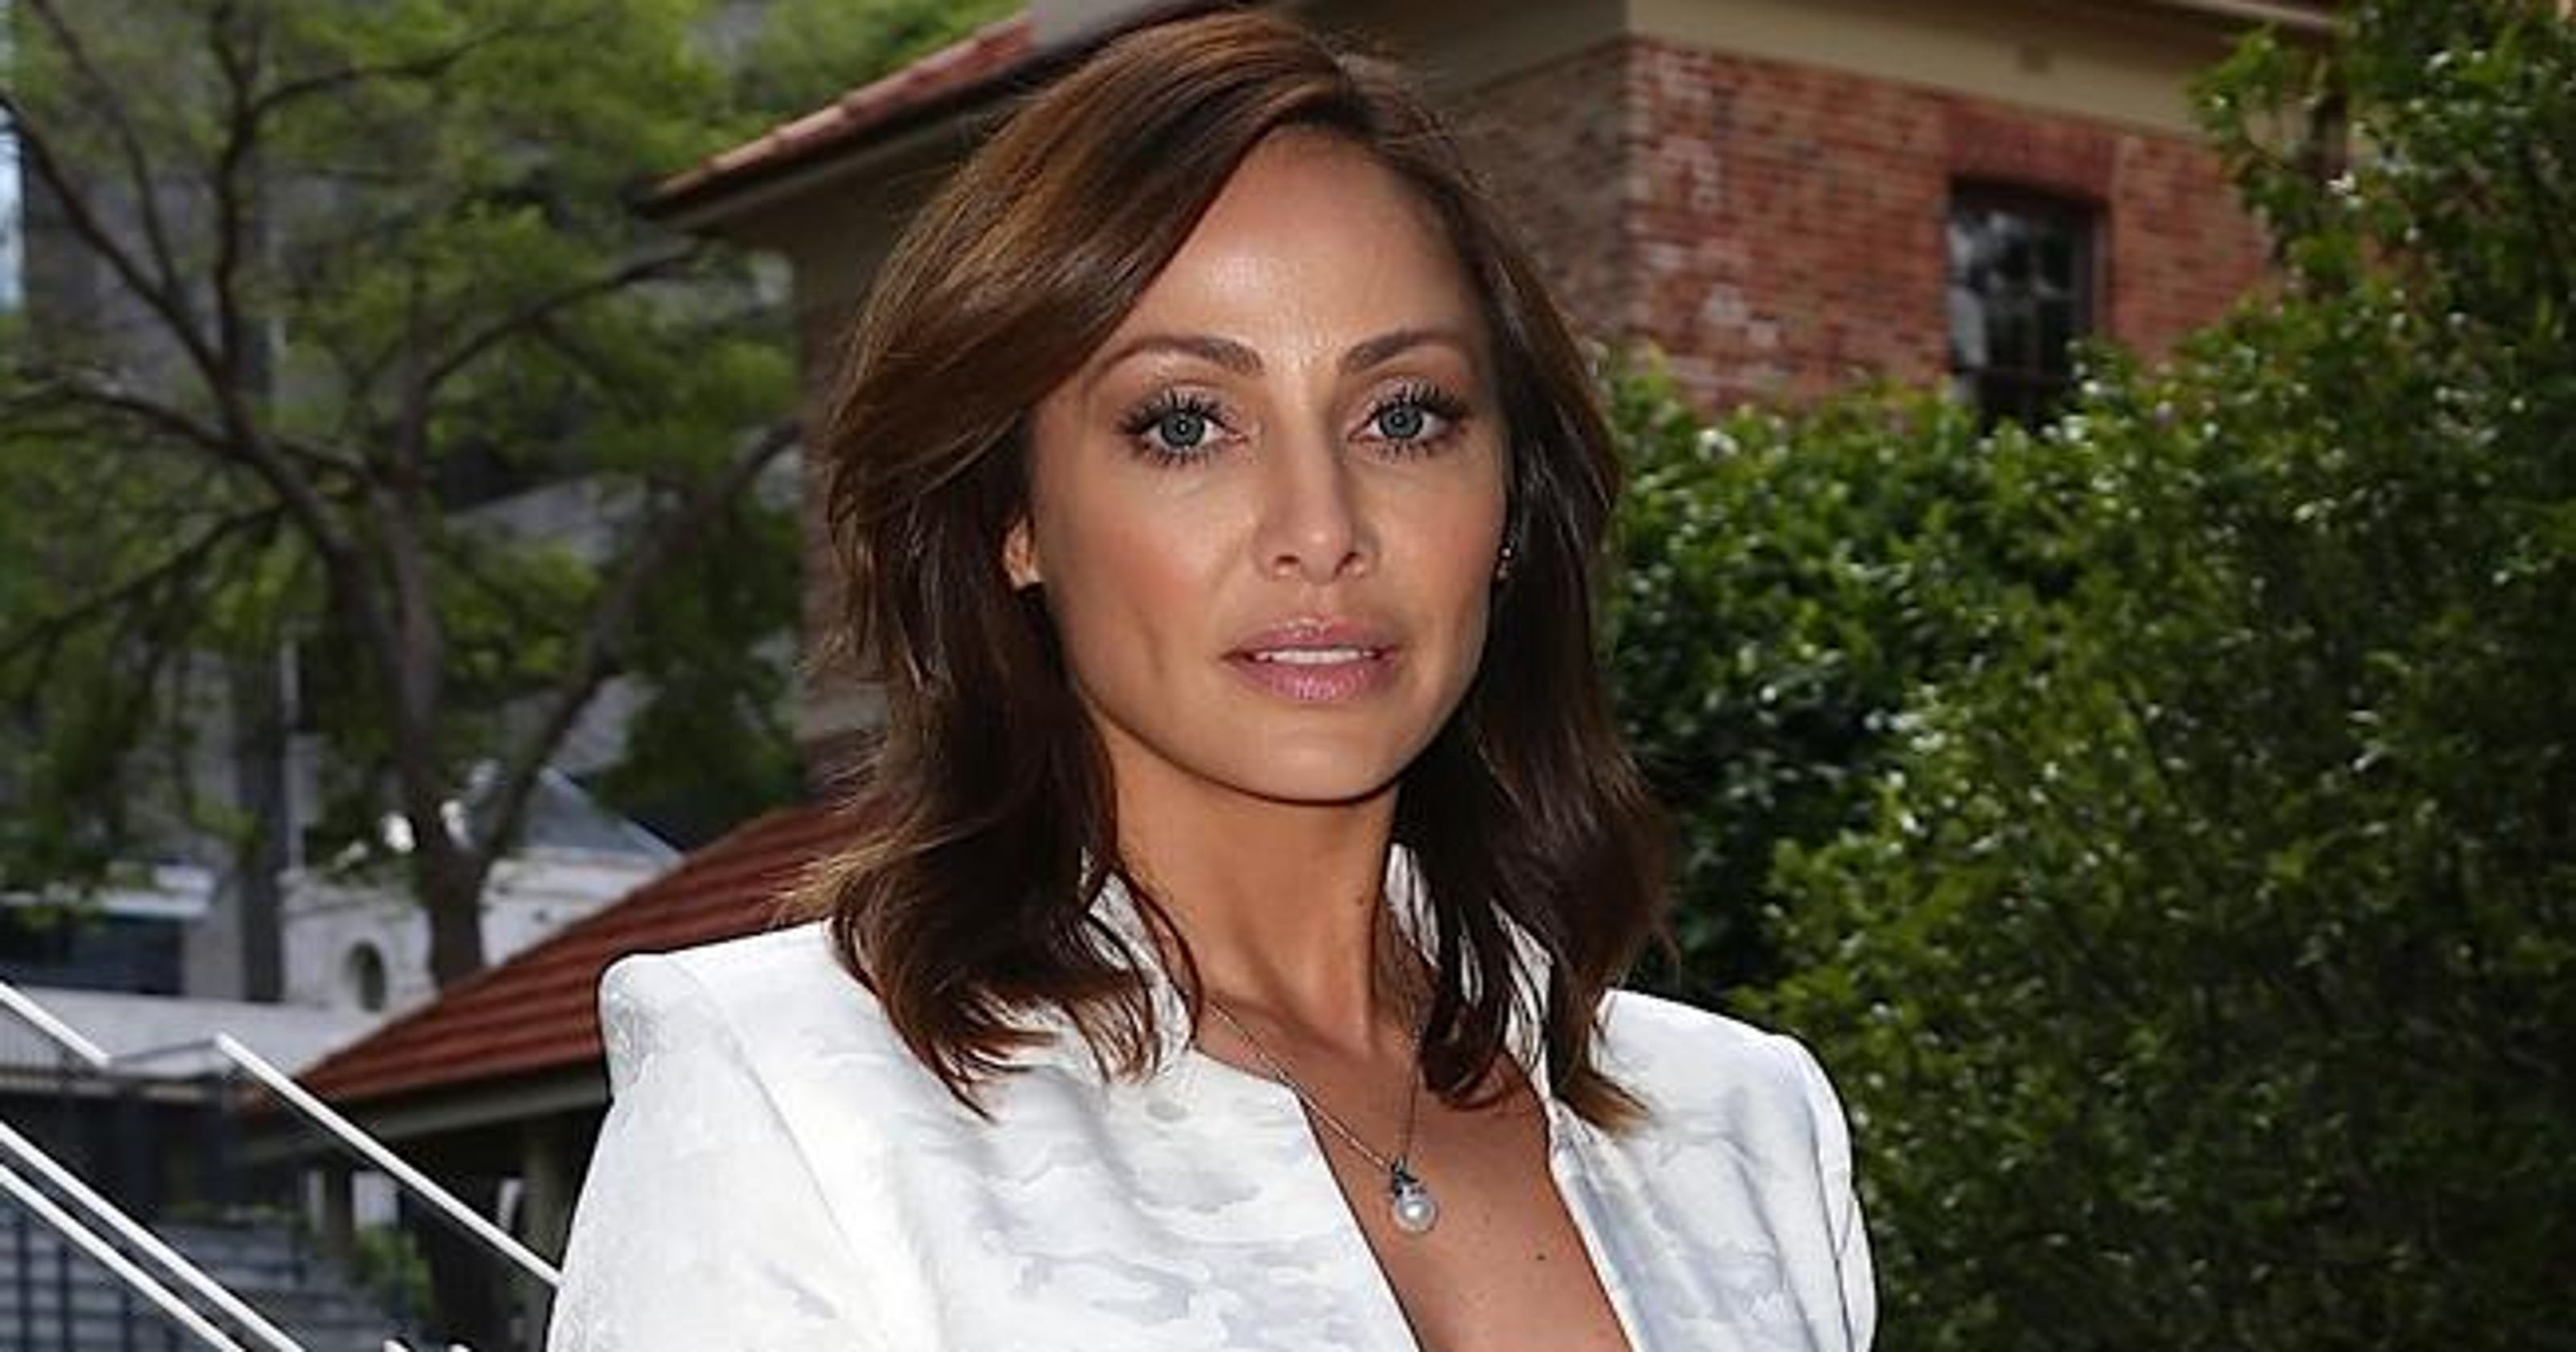 Natalie Imbruglia: I did crazy things after my divorce